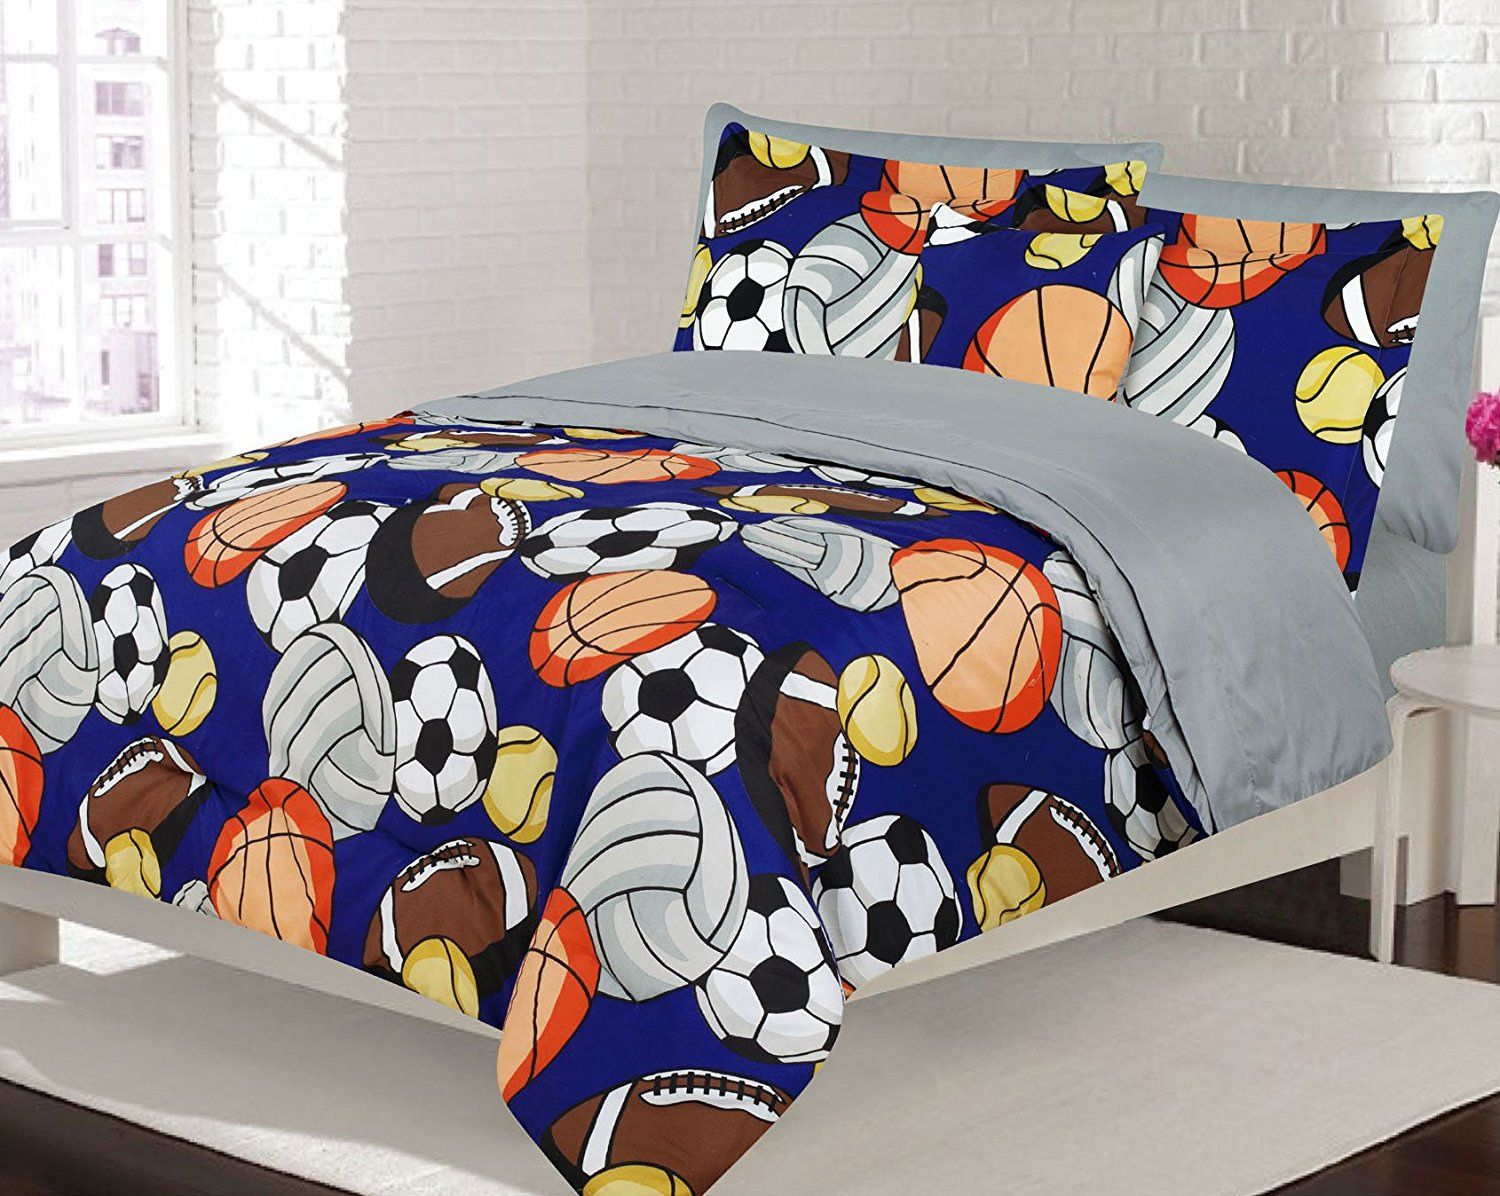 Pin By Hendro Birowo On Modern Design Low Budget Sports Bedding